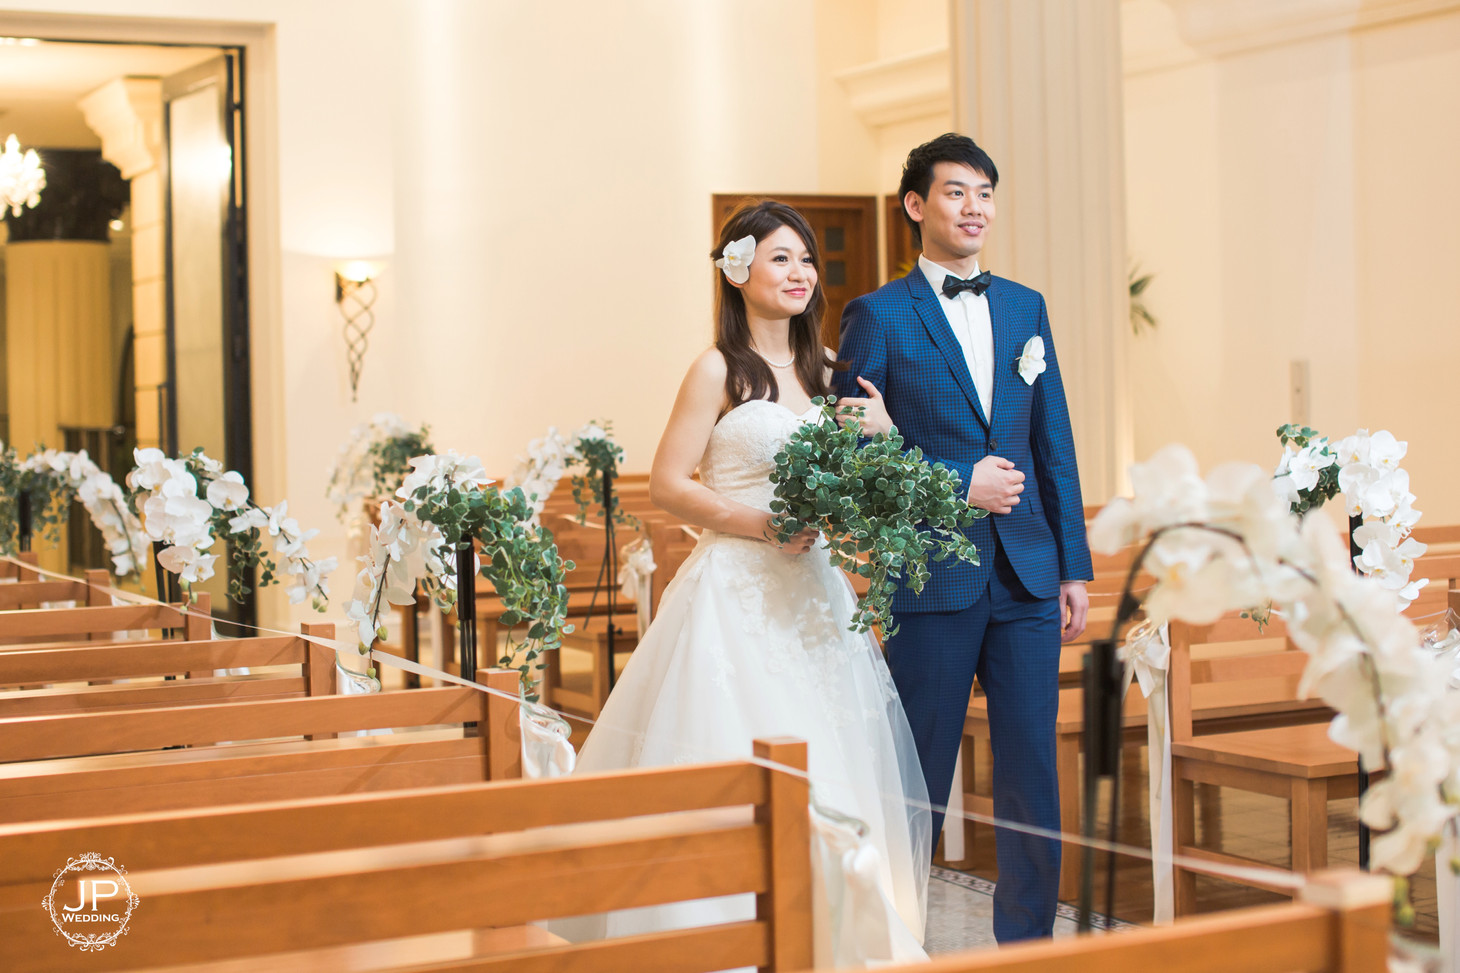 JP_Wedding-Hong_Kong_Prewedding_Photoshoot_Service-1.jpg